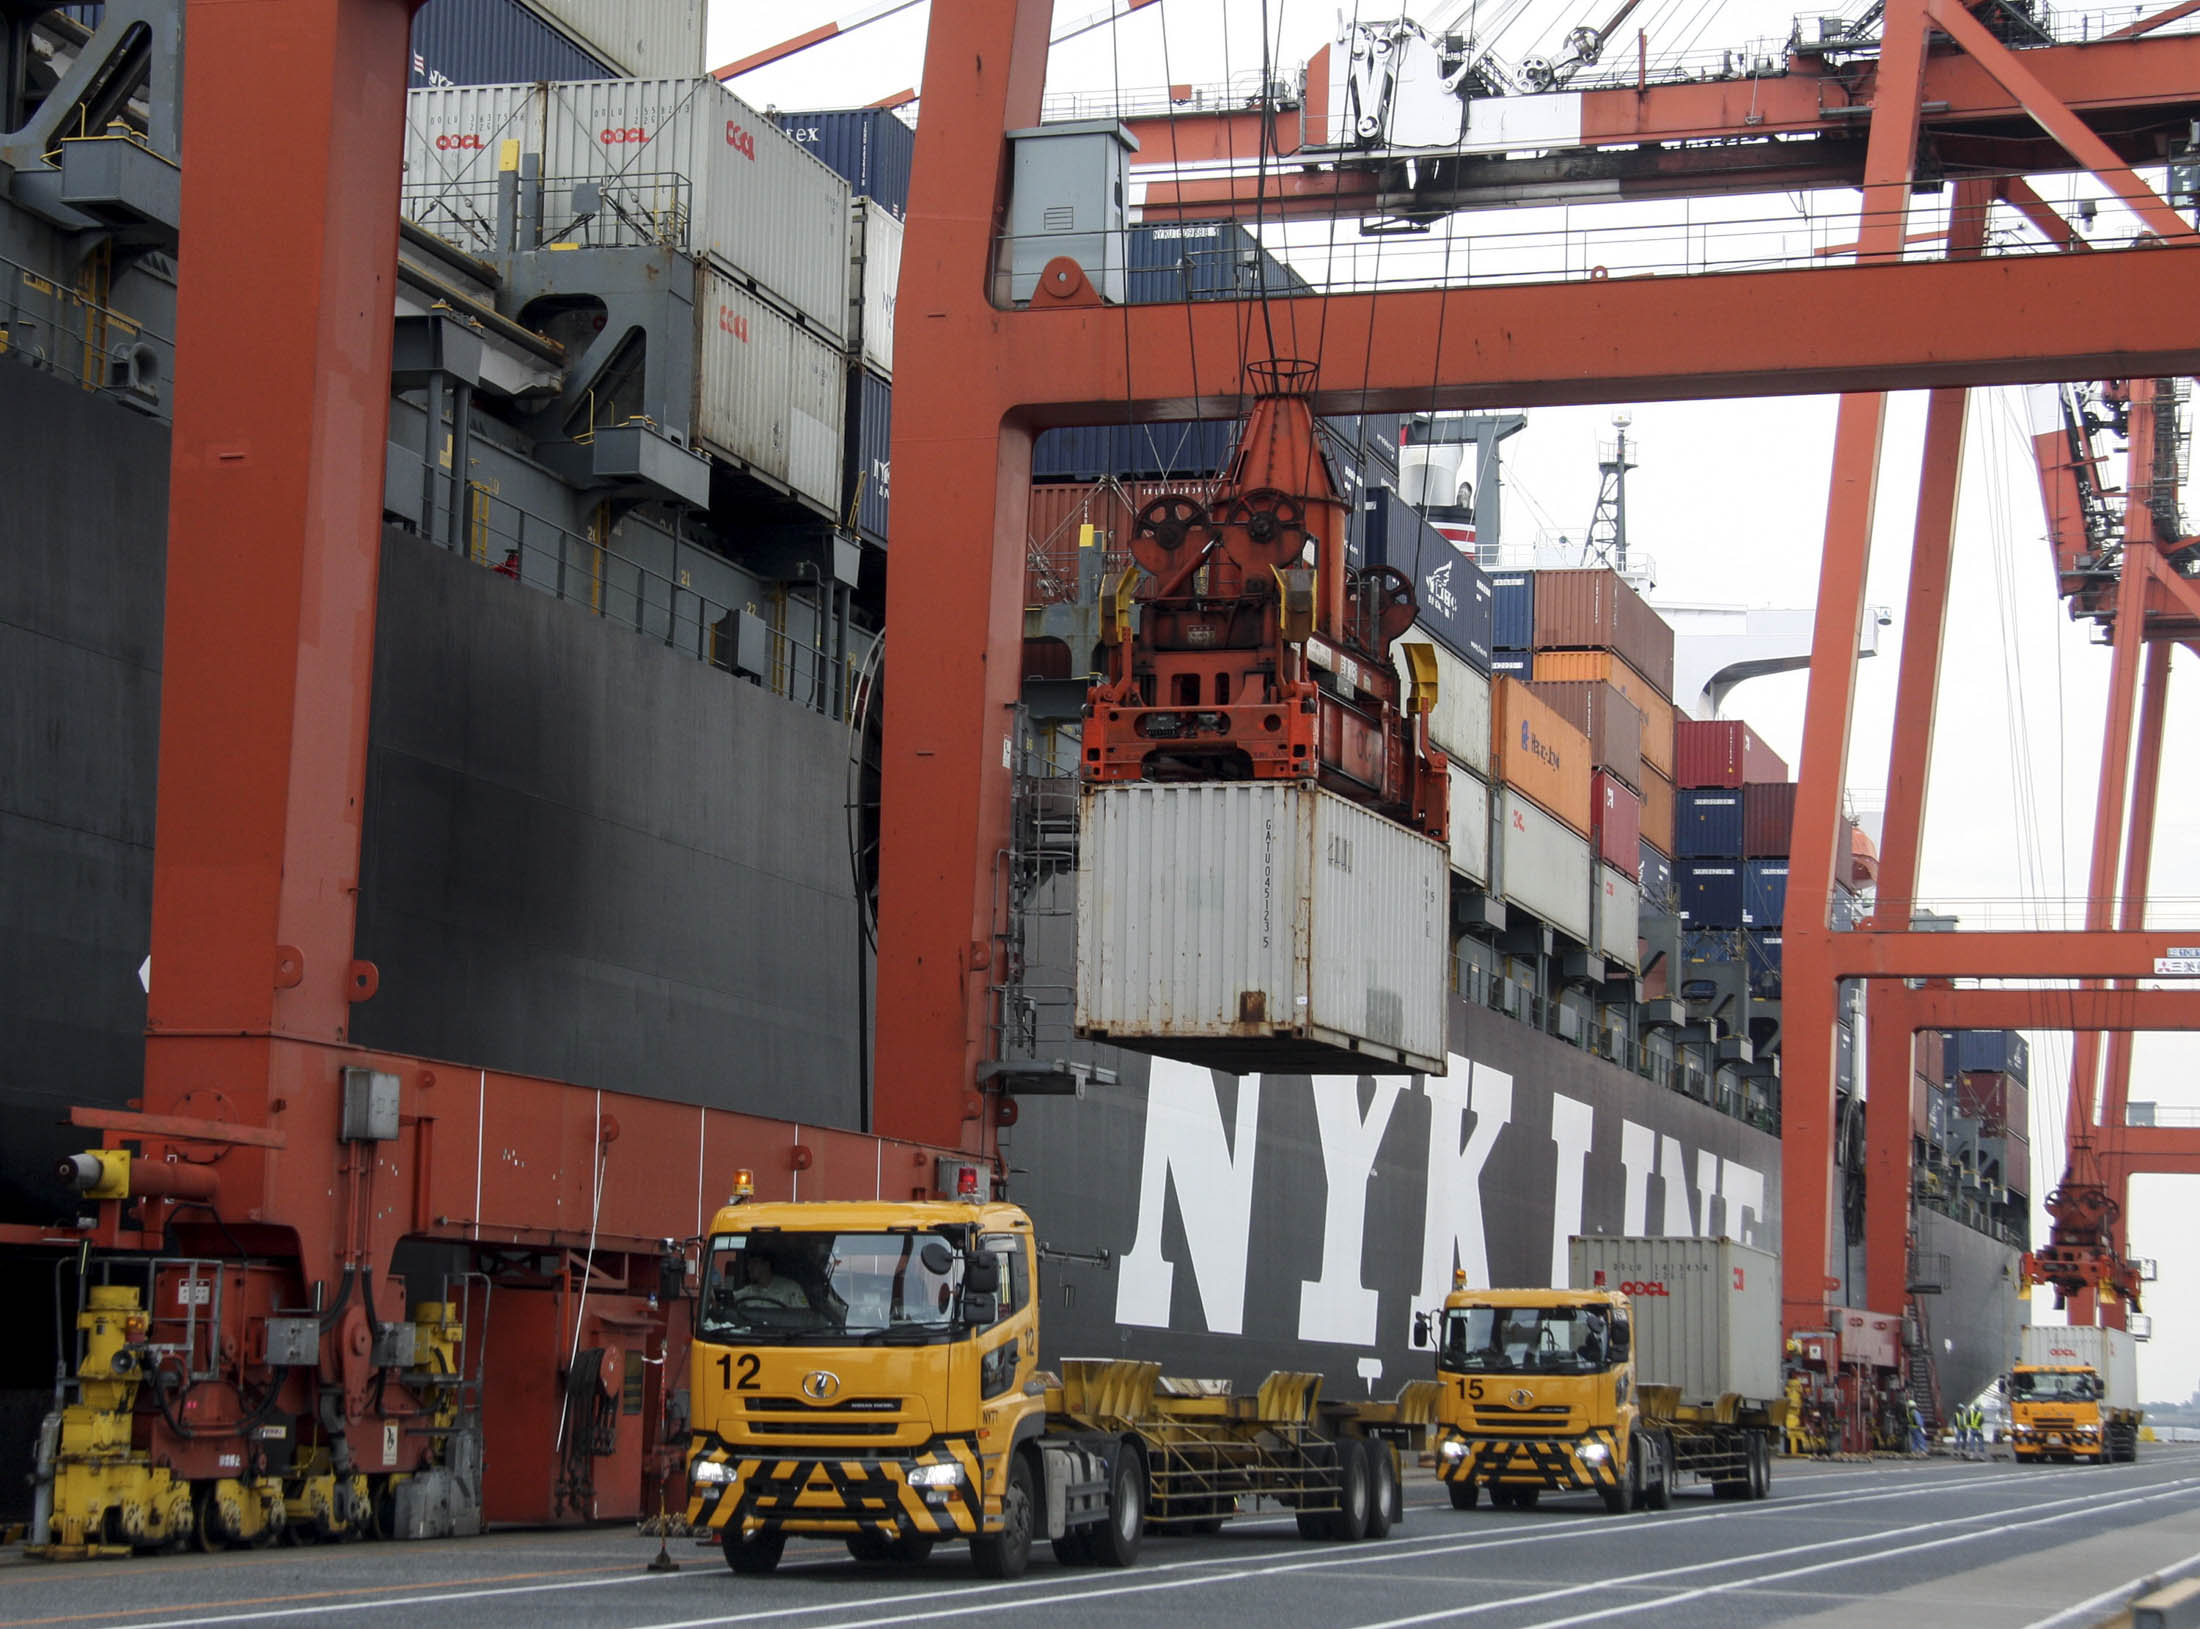 A container is unloaded from a truck onto a ship at a container terminal in Tokyo, Japan, on Friday, Sep 26, 2008. Photographer: Haruyoshi Yamaguchi/Bloomberg News